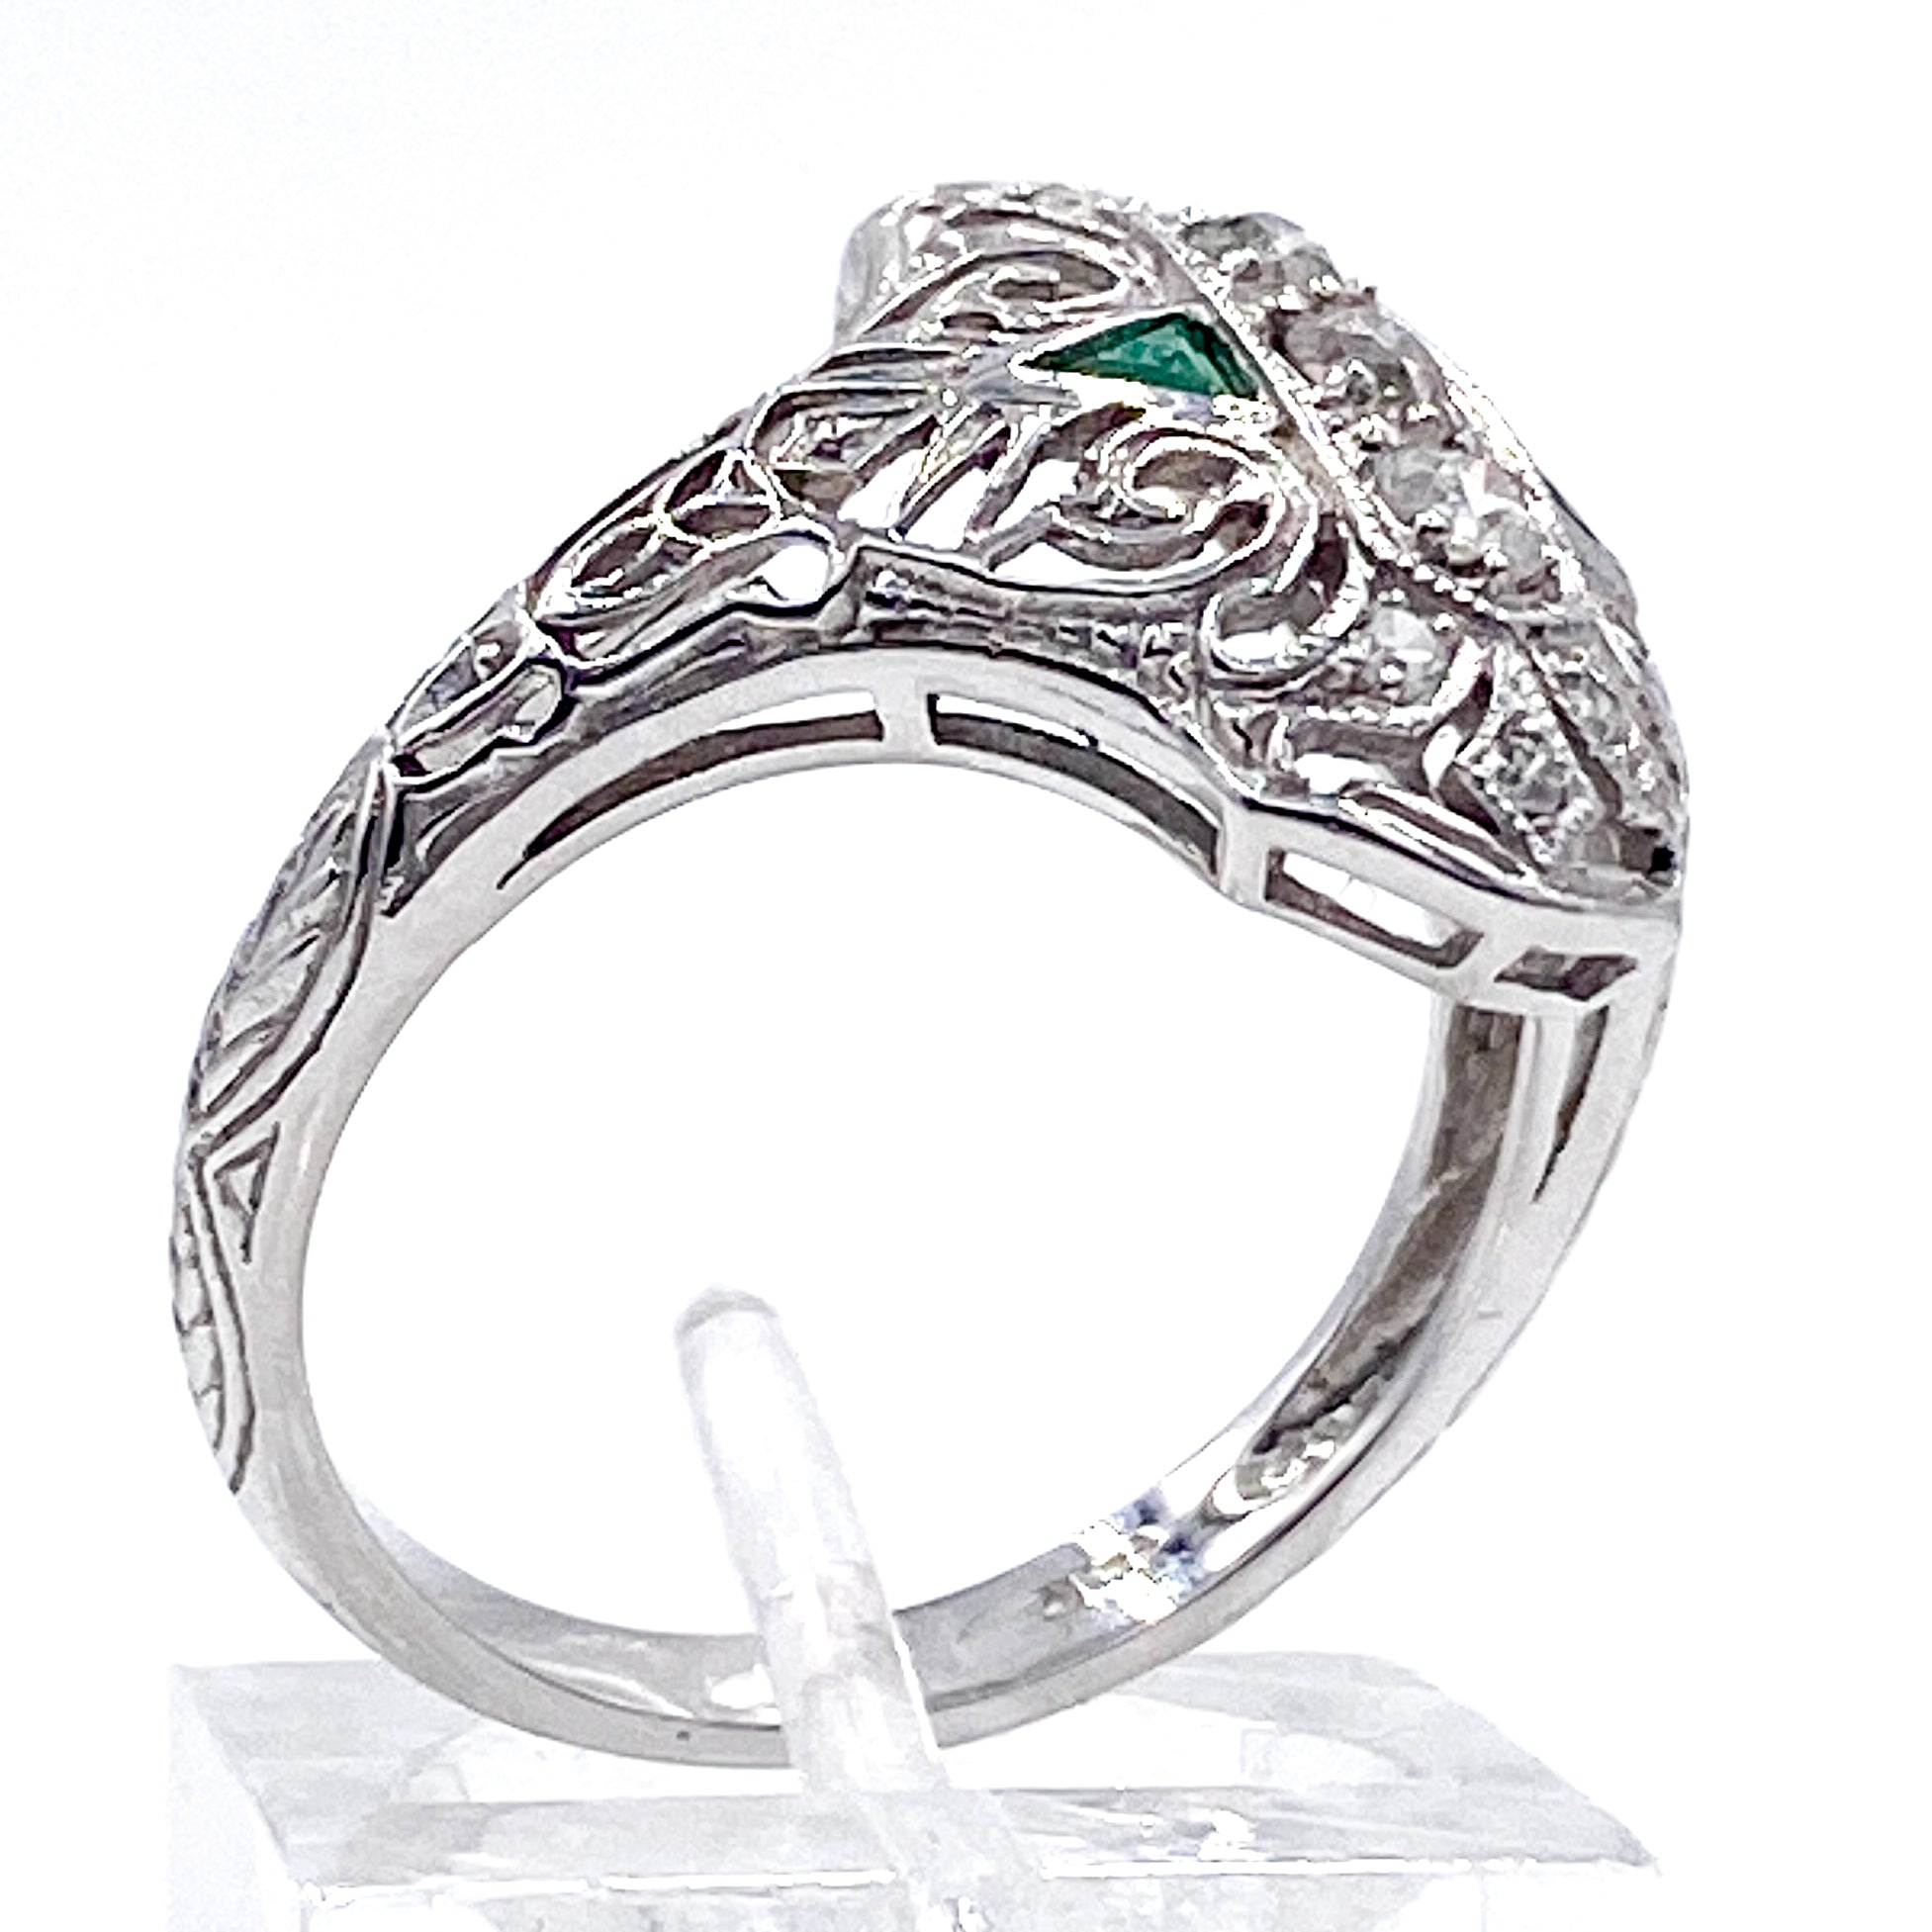 Art Deco ca.1920s Diamond and Emerald Filigree Dinner Ring in 14KWG